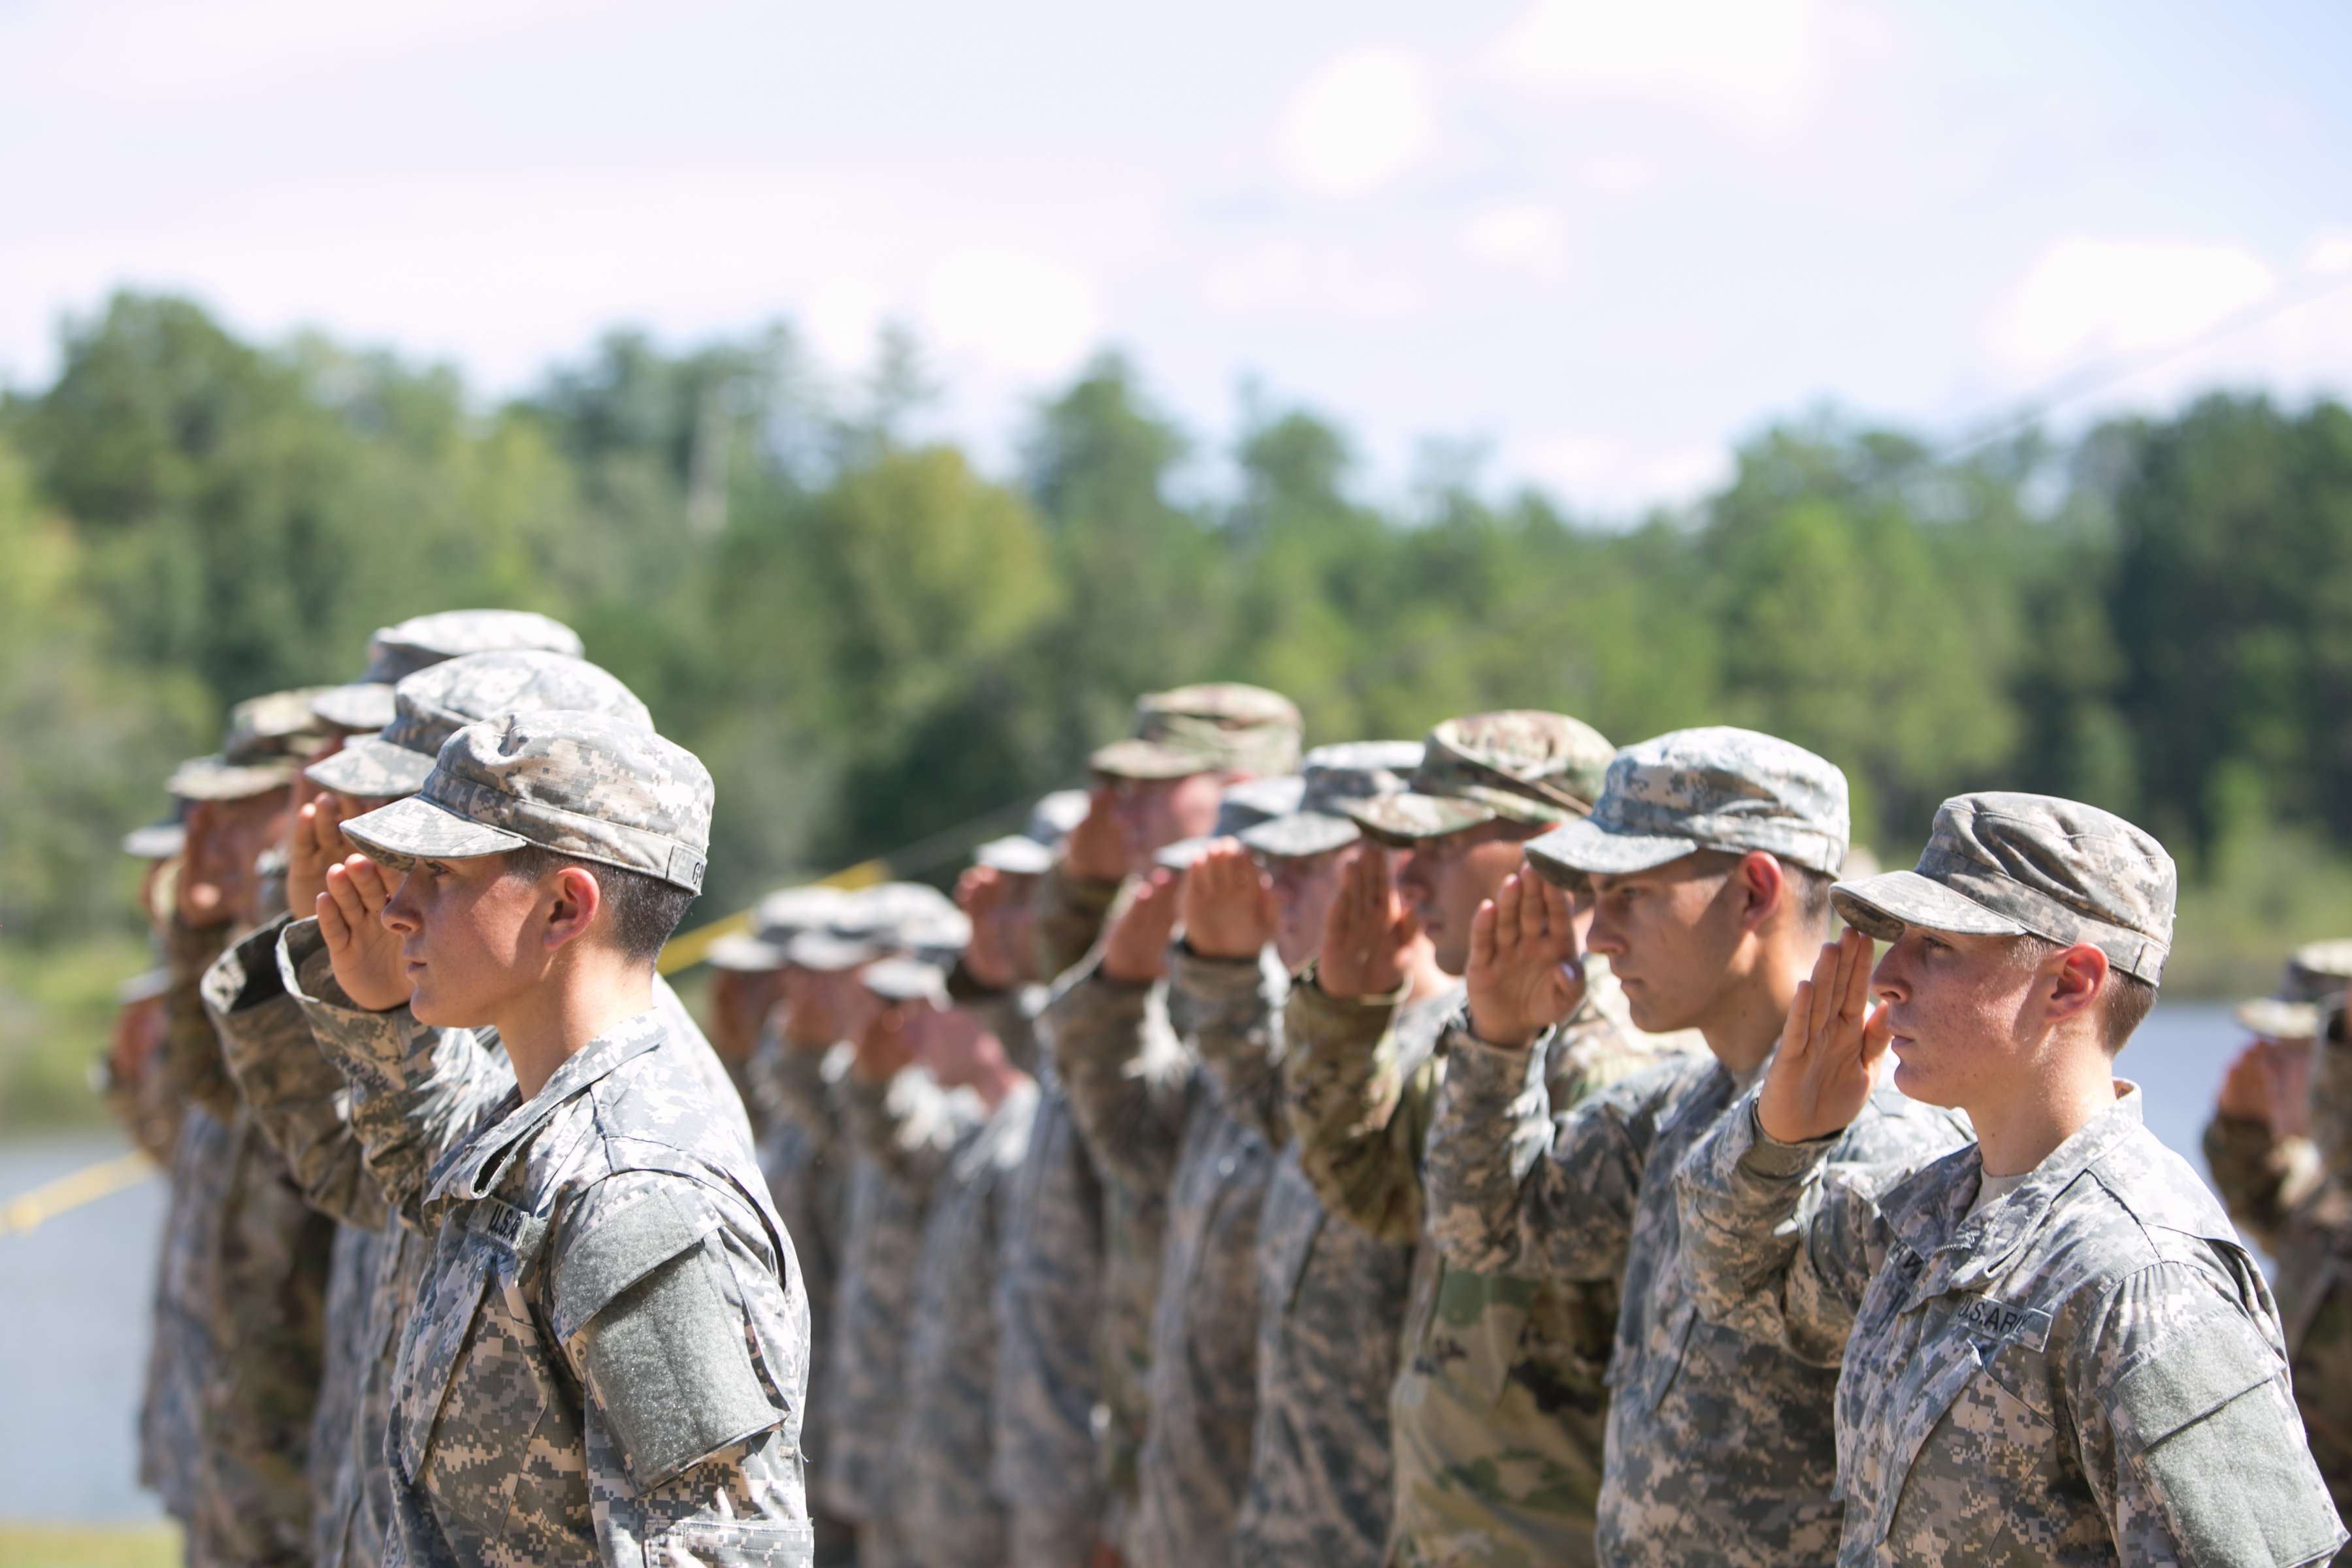 Capt. Kristen Griest (L) and 1st Lt.  Shaye Haver (R) salute during the graduation ceremony of the United States Army's Ranger School at Fort Benning, Georgia on Aug. 21, 2015.  Griest and Haver are the first females to graduate from the Army's intensive Ranger School.